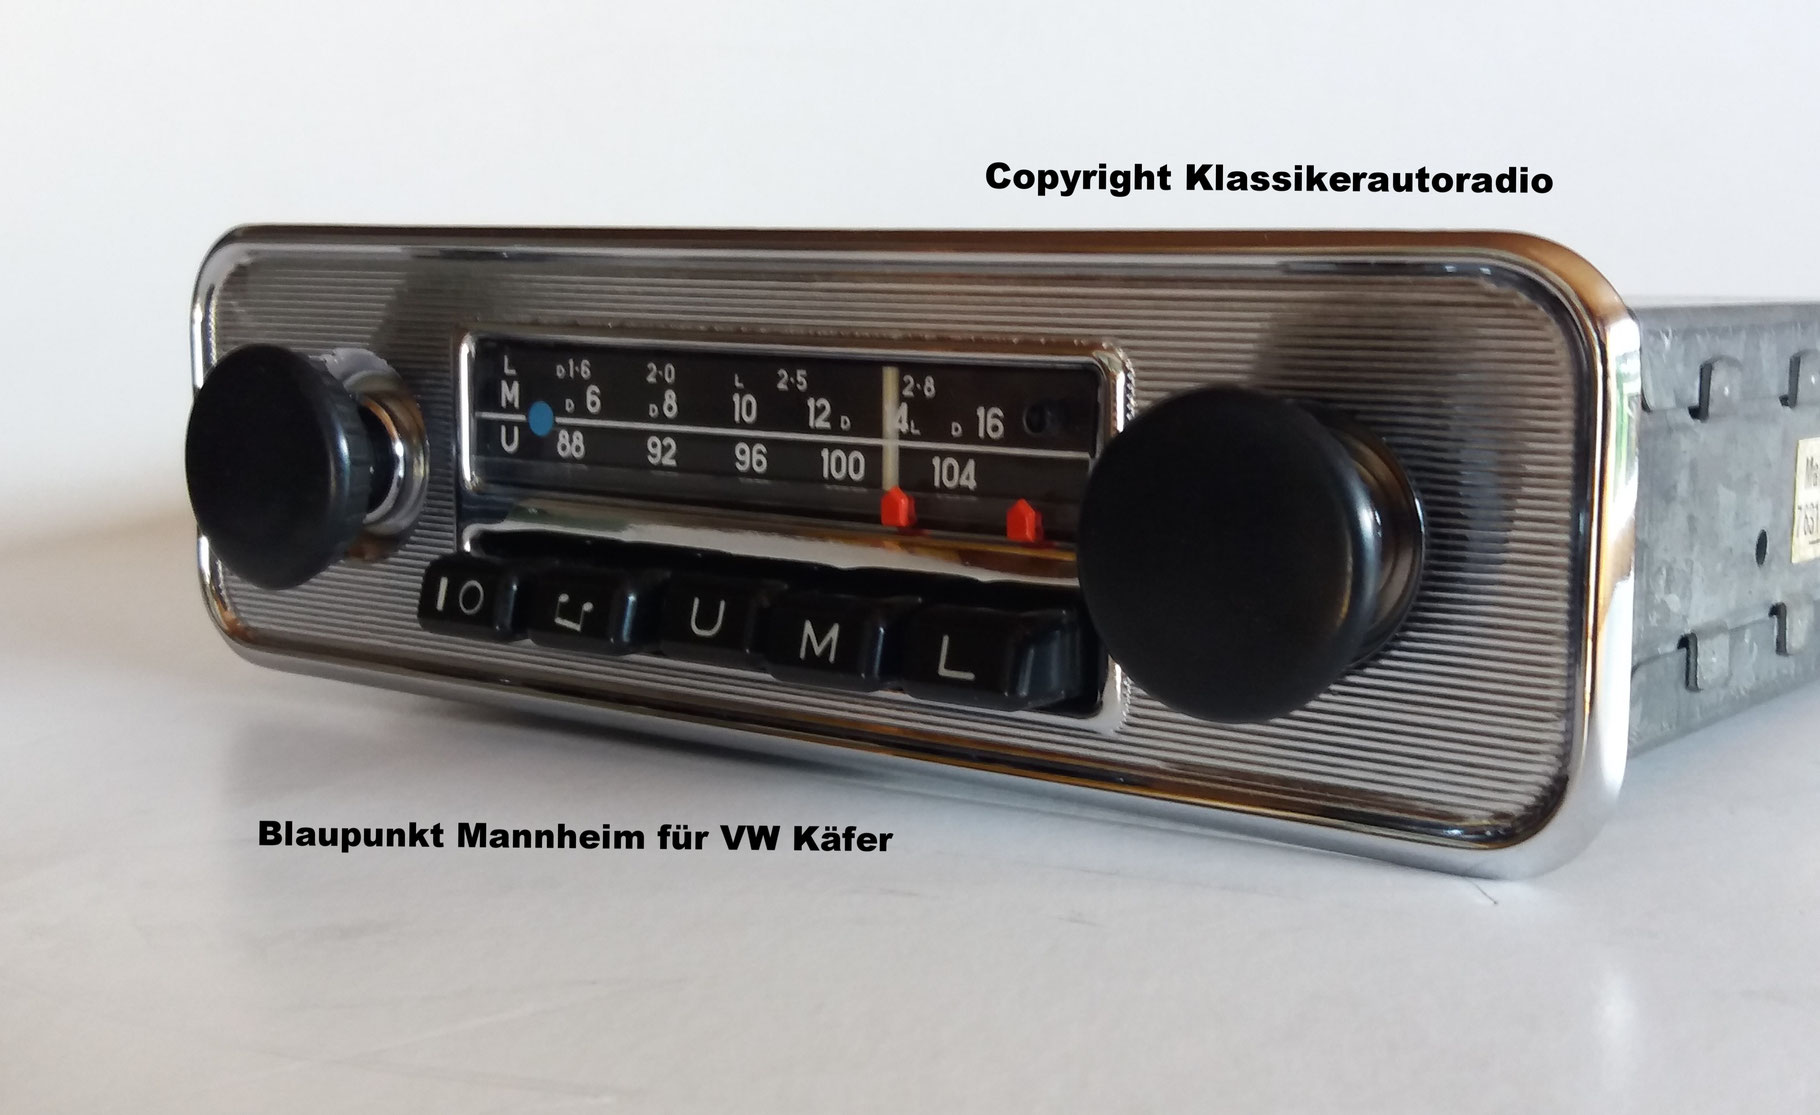 blaupunkt oldtimer autoradio klassikerautoradio. Black Bedroom Furniture Sets. Home Design Ideas